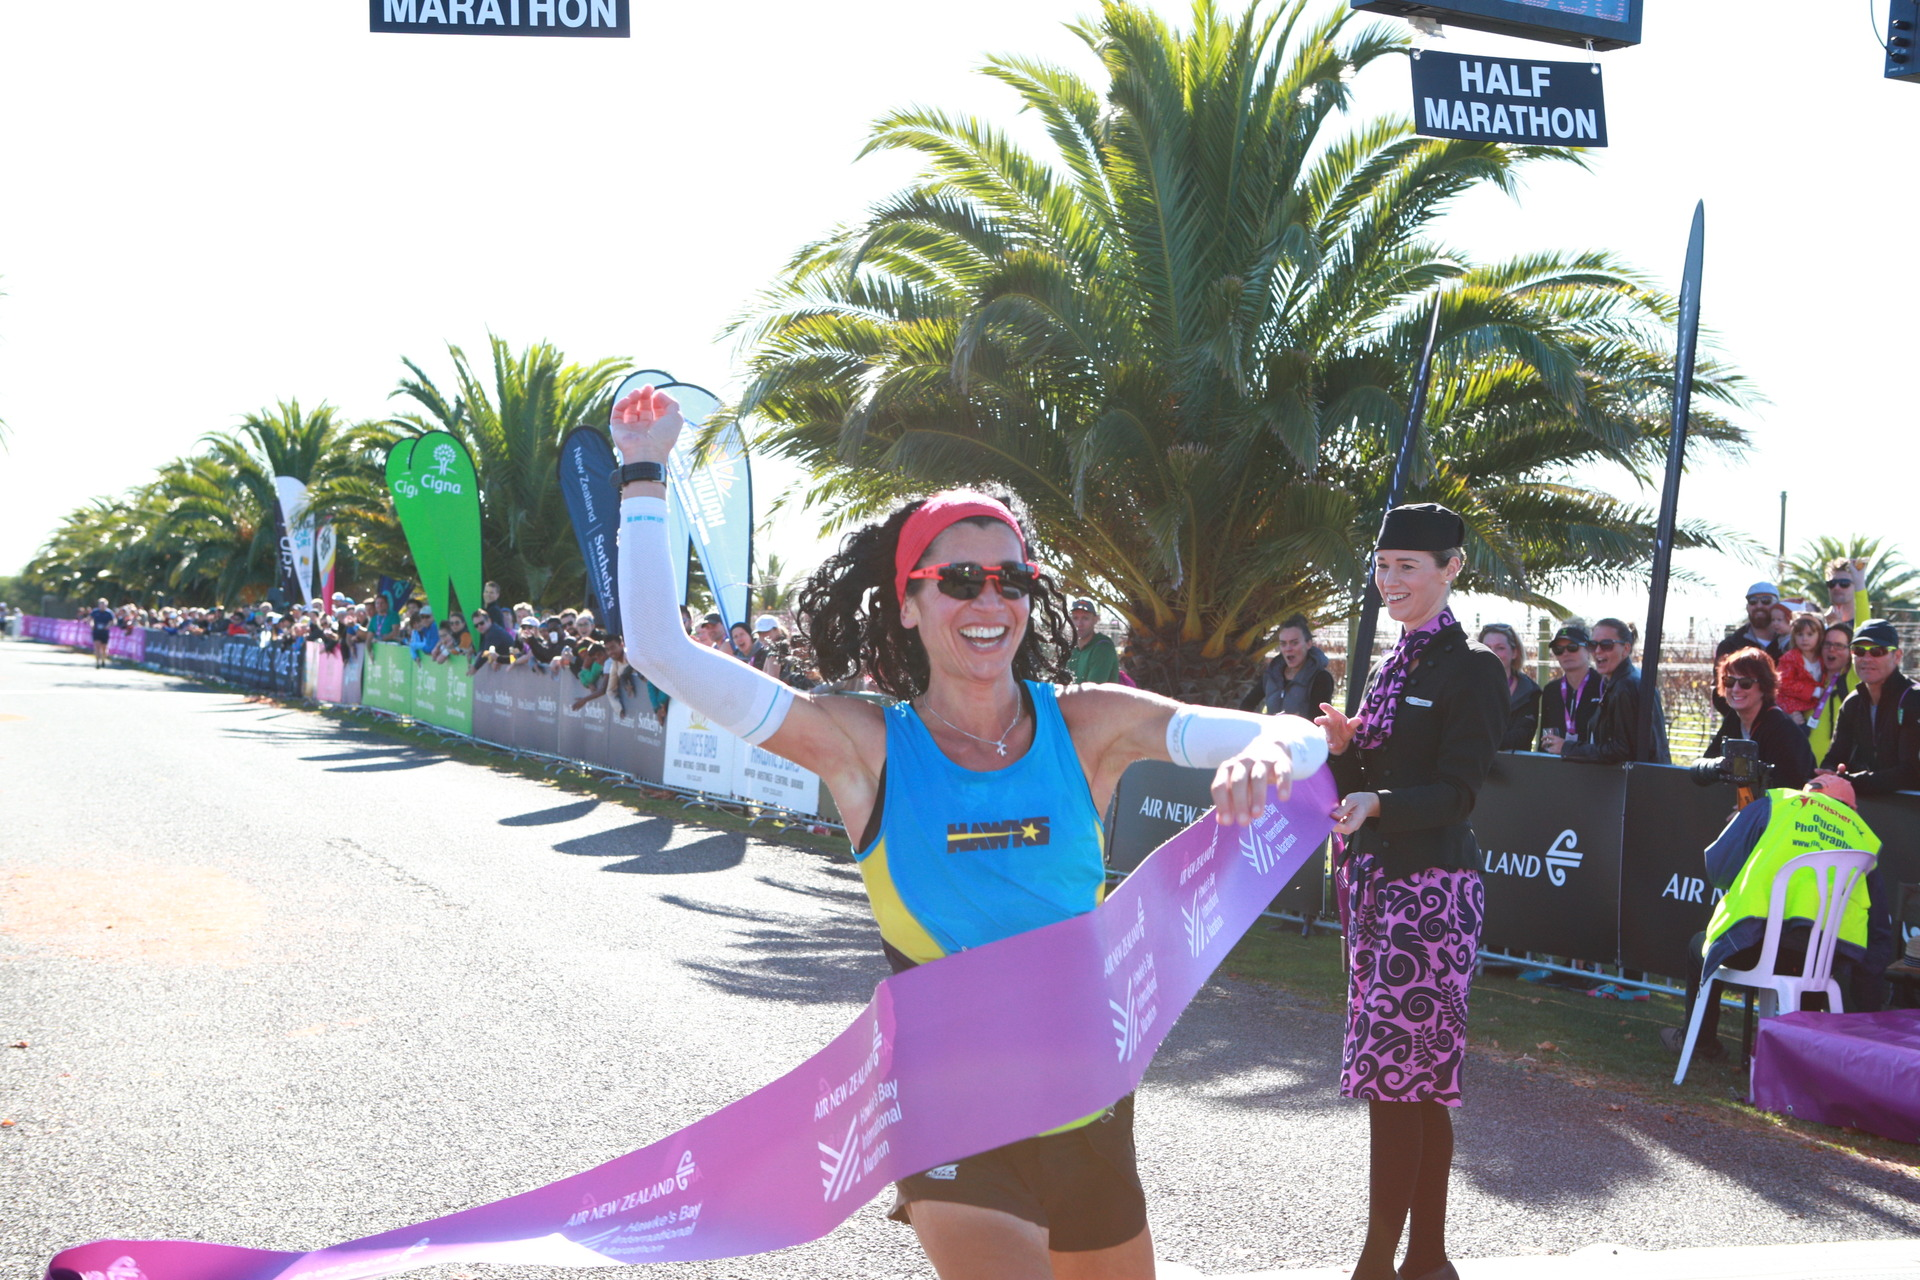 Marathon: Cecilia Flori makes training run look academic after clinching the Hawke's Bay crown